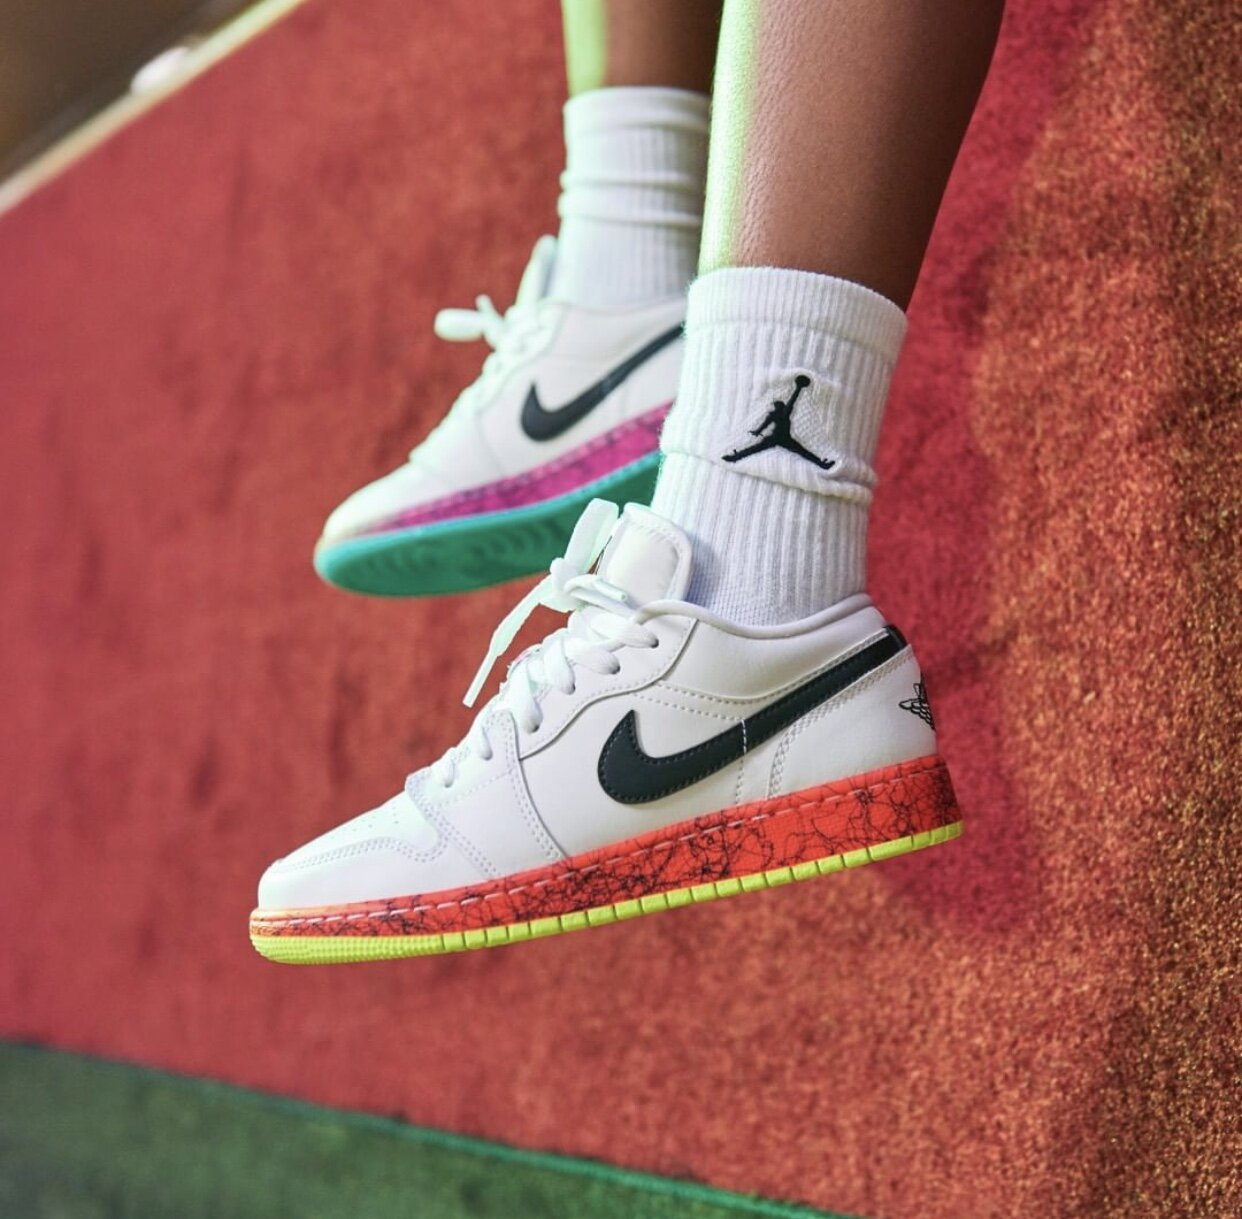 Cop Or Can Get Low With This Air Jordan 1 Low Cnk Daily